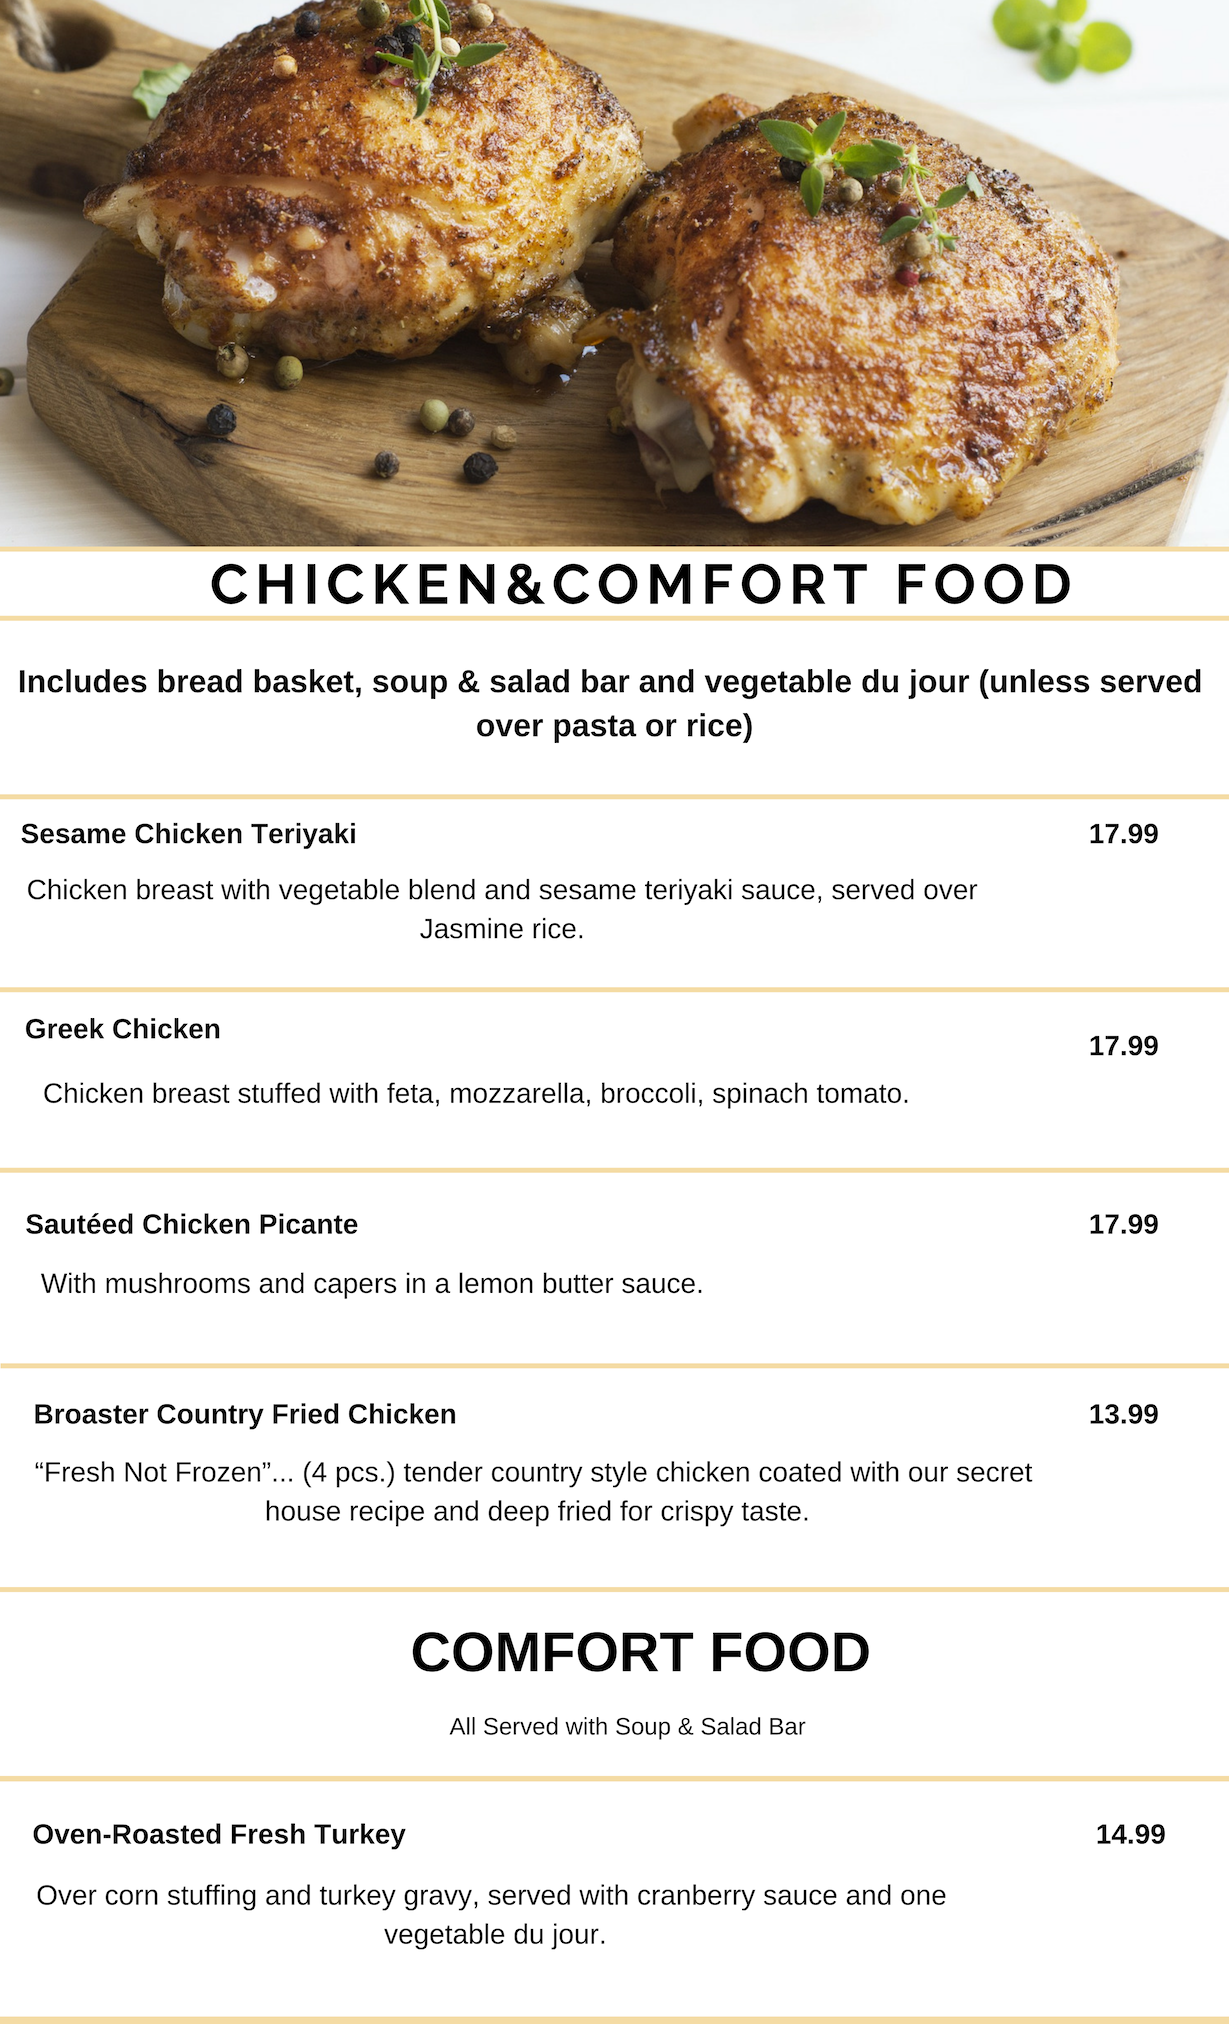 CHICKEN & COMFORT FOOD